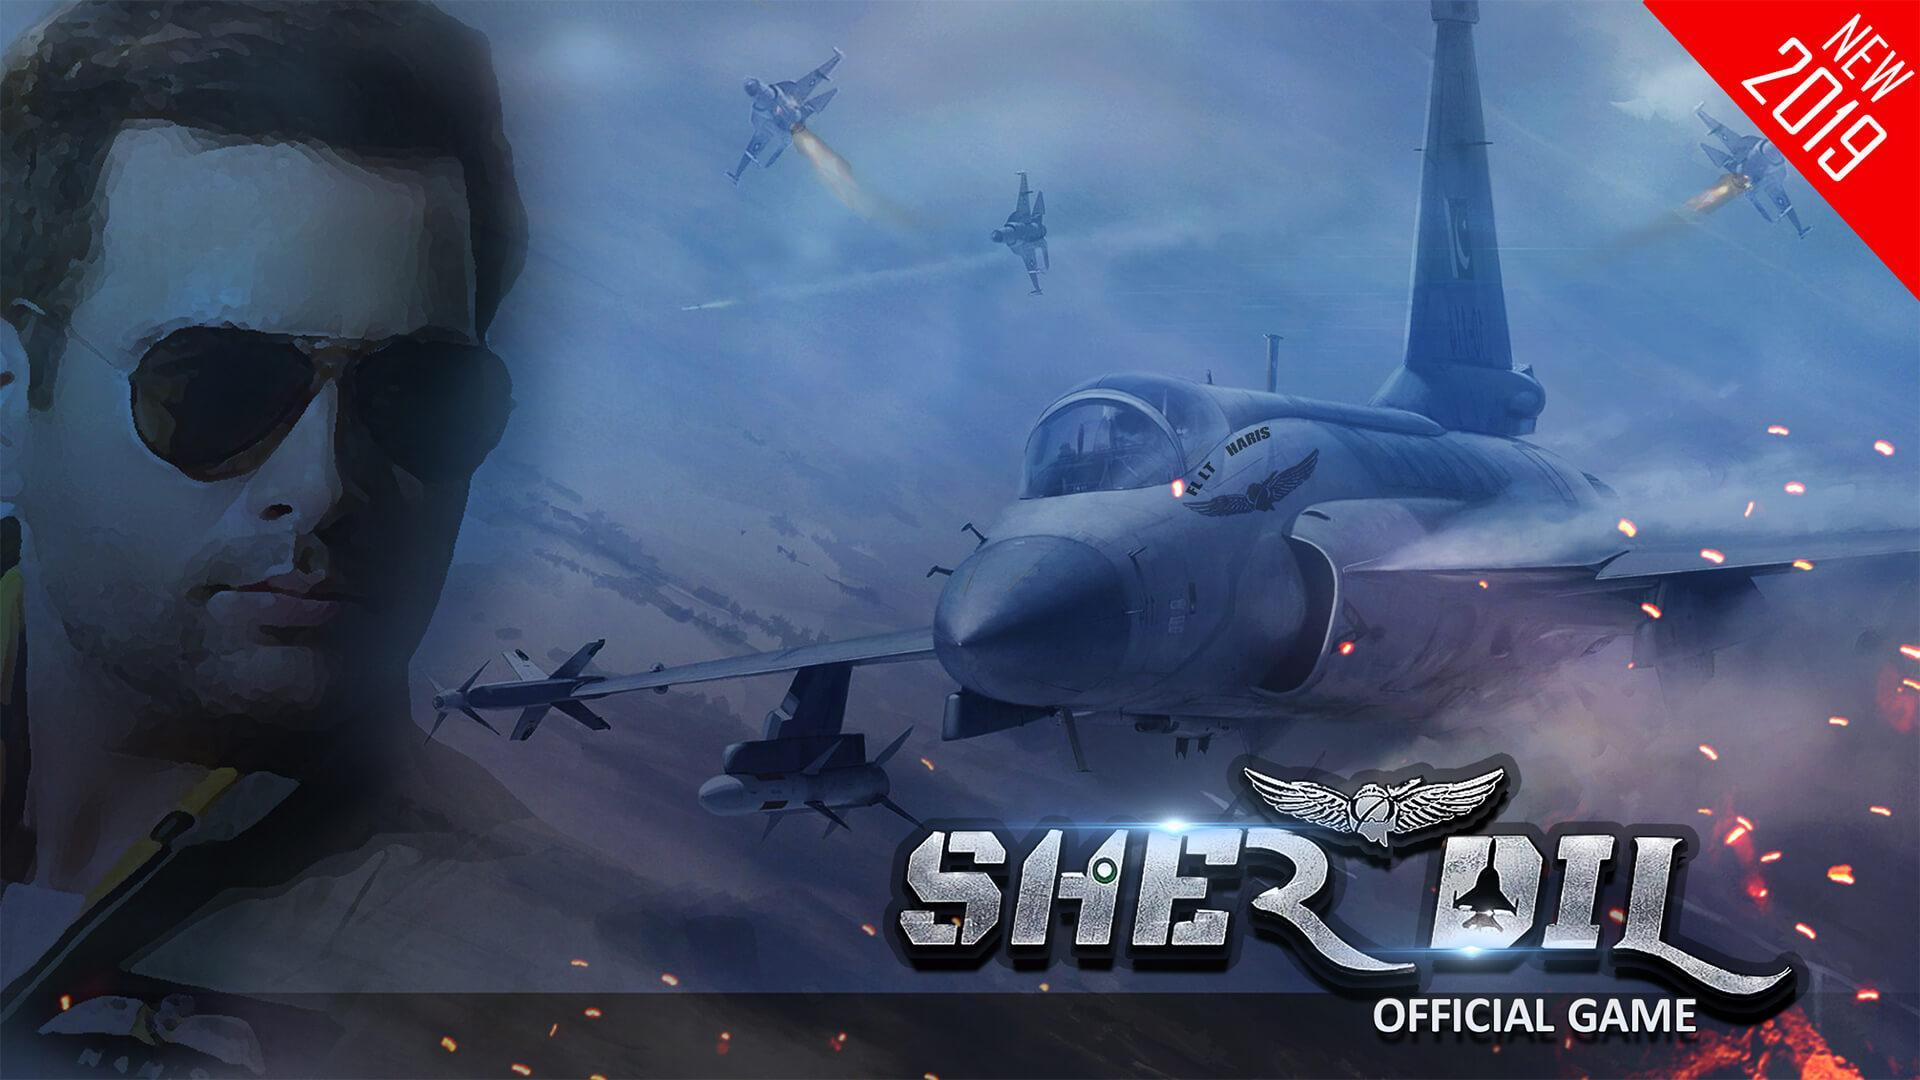 Sherdil - The Official Game for Android - APK Download